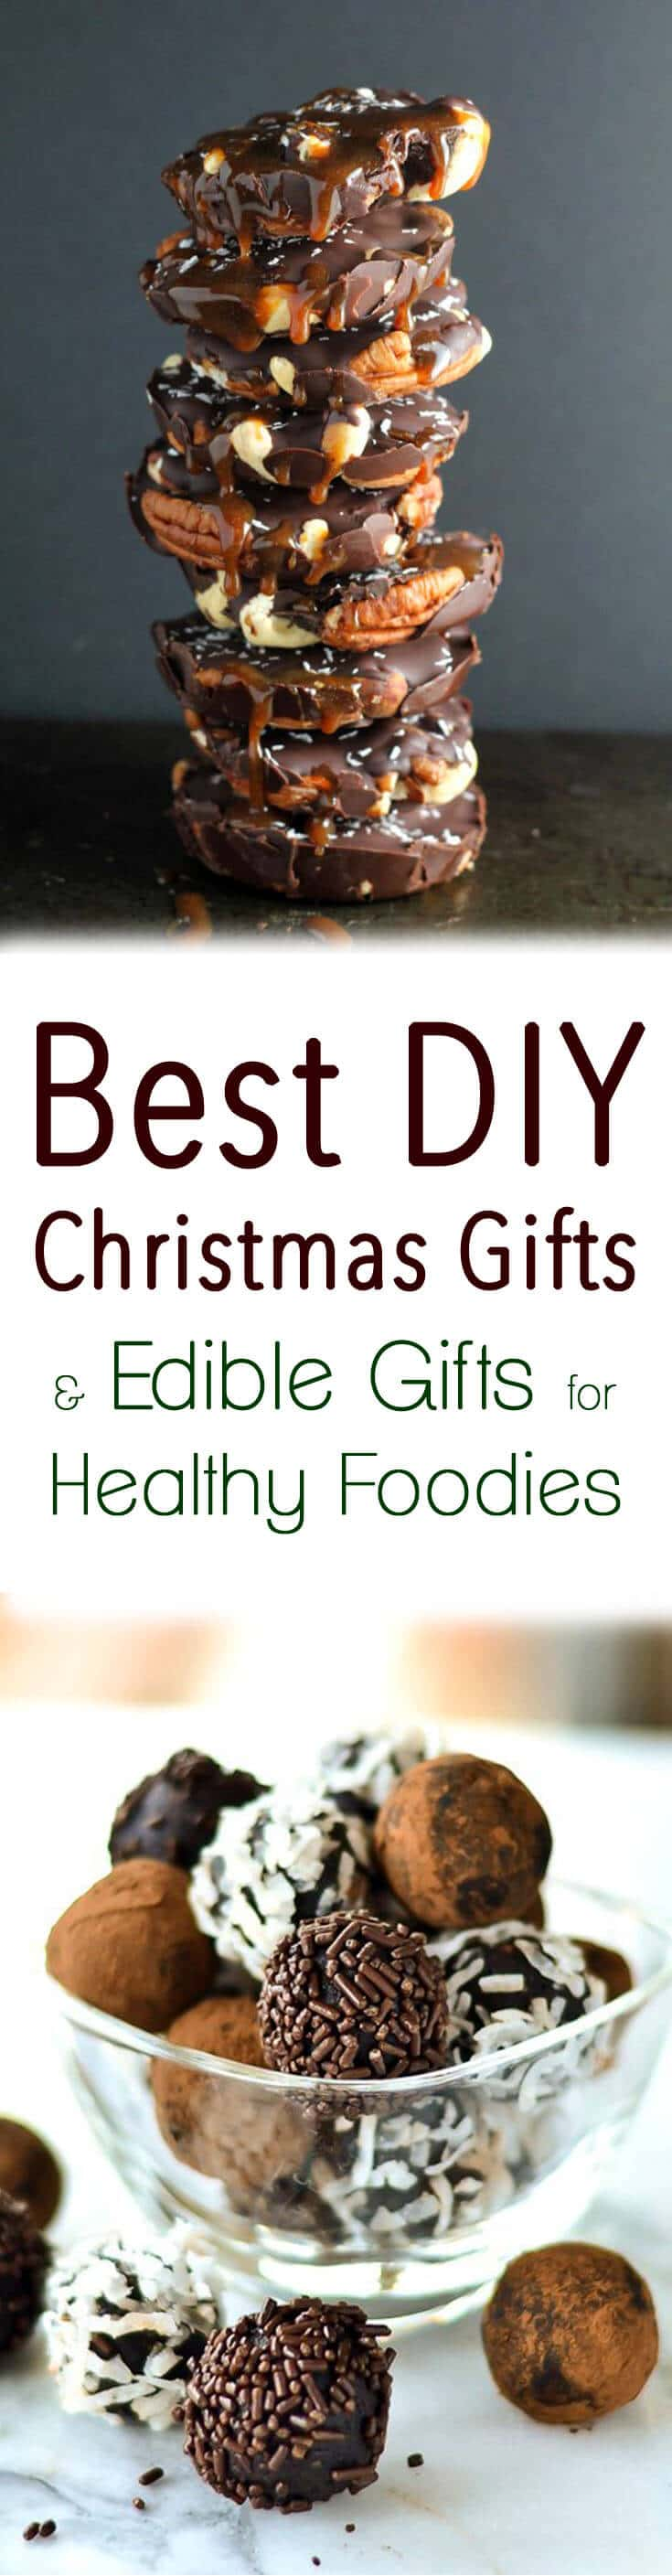 Best Diy Christmas Gifts Edible Gifts For Healthy Foodies